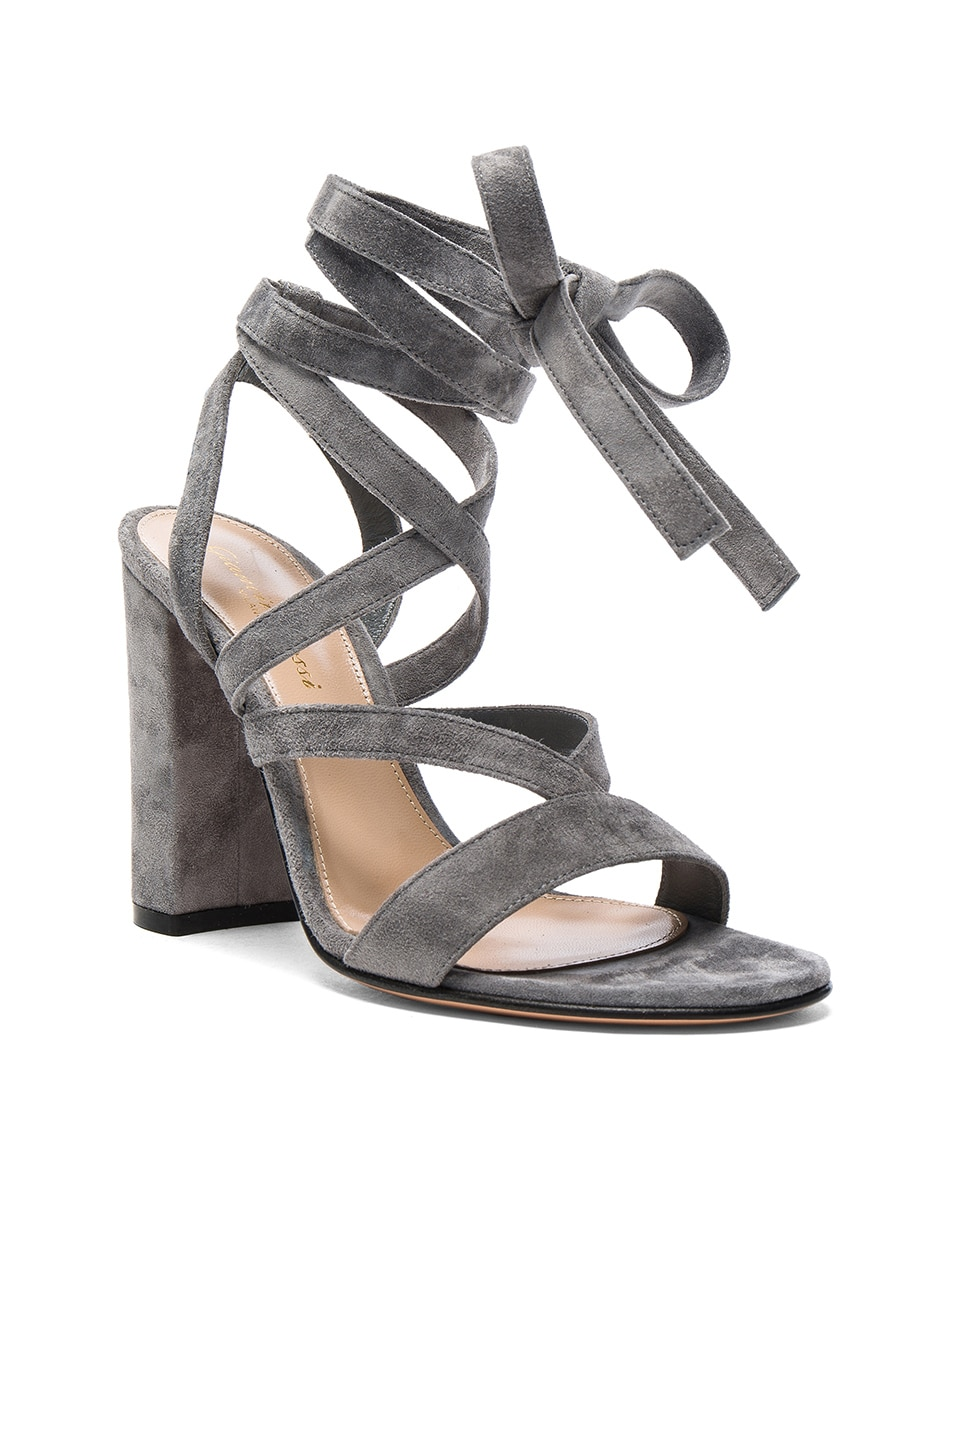 Image 2 of Gianvito Rossi Suede Janis High Sandals in Fumo